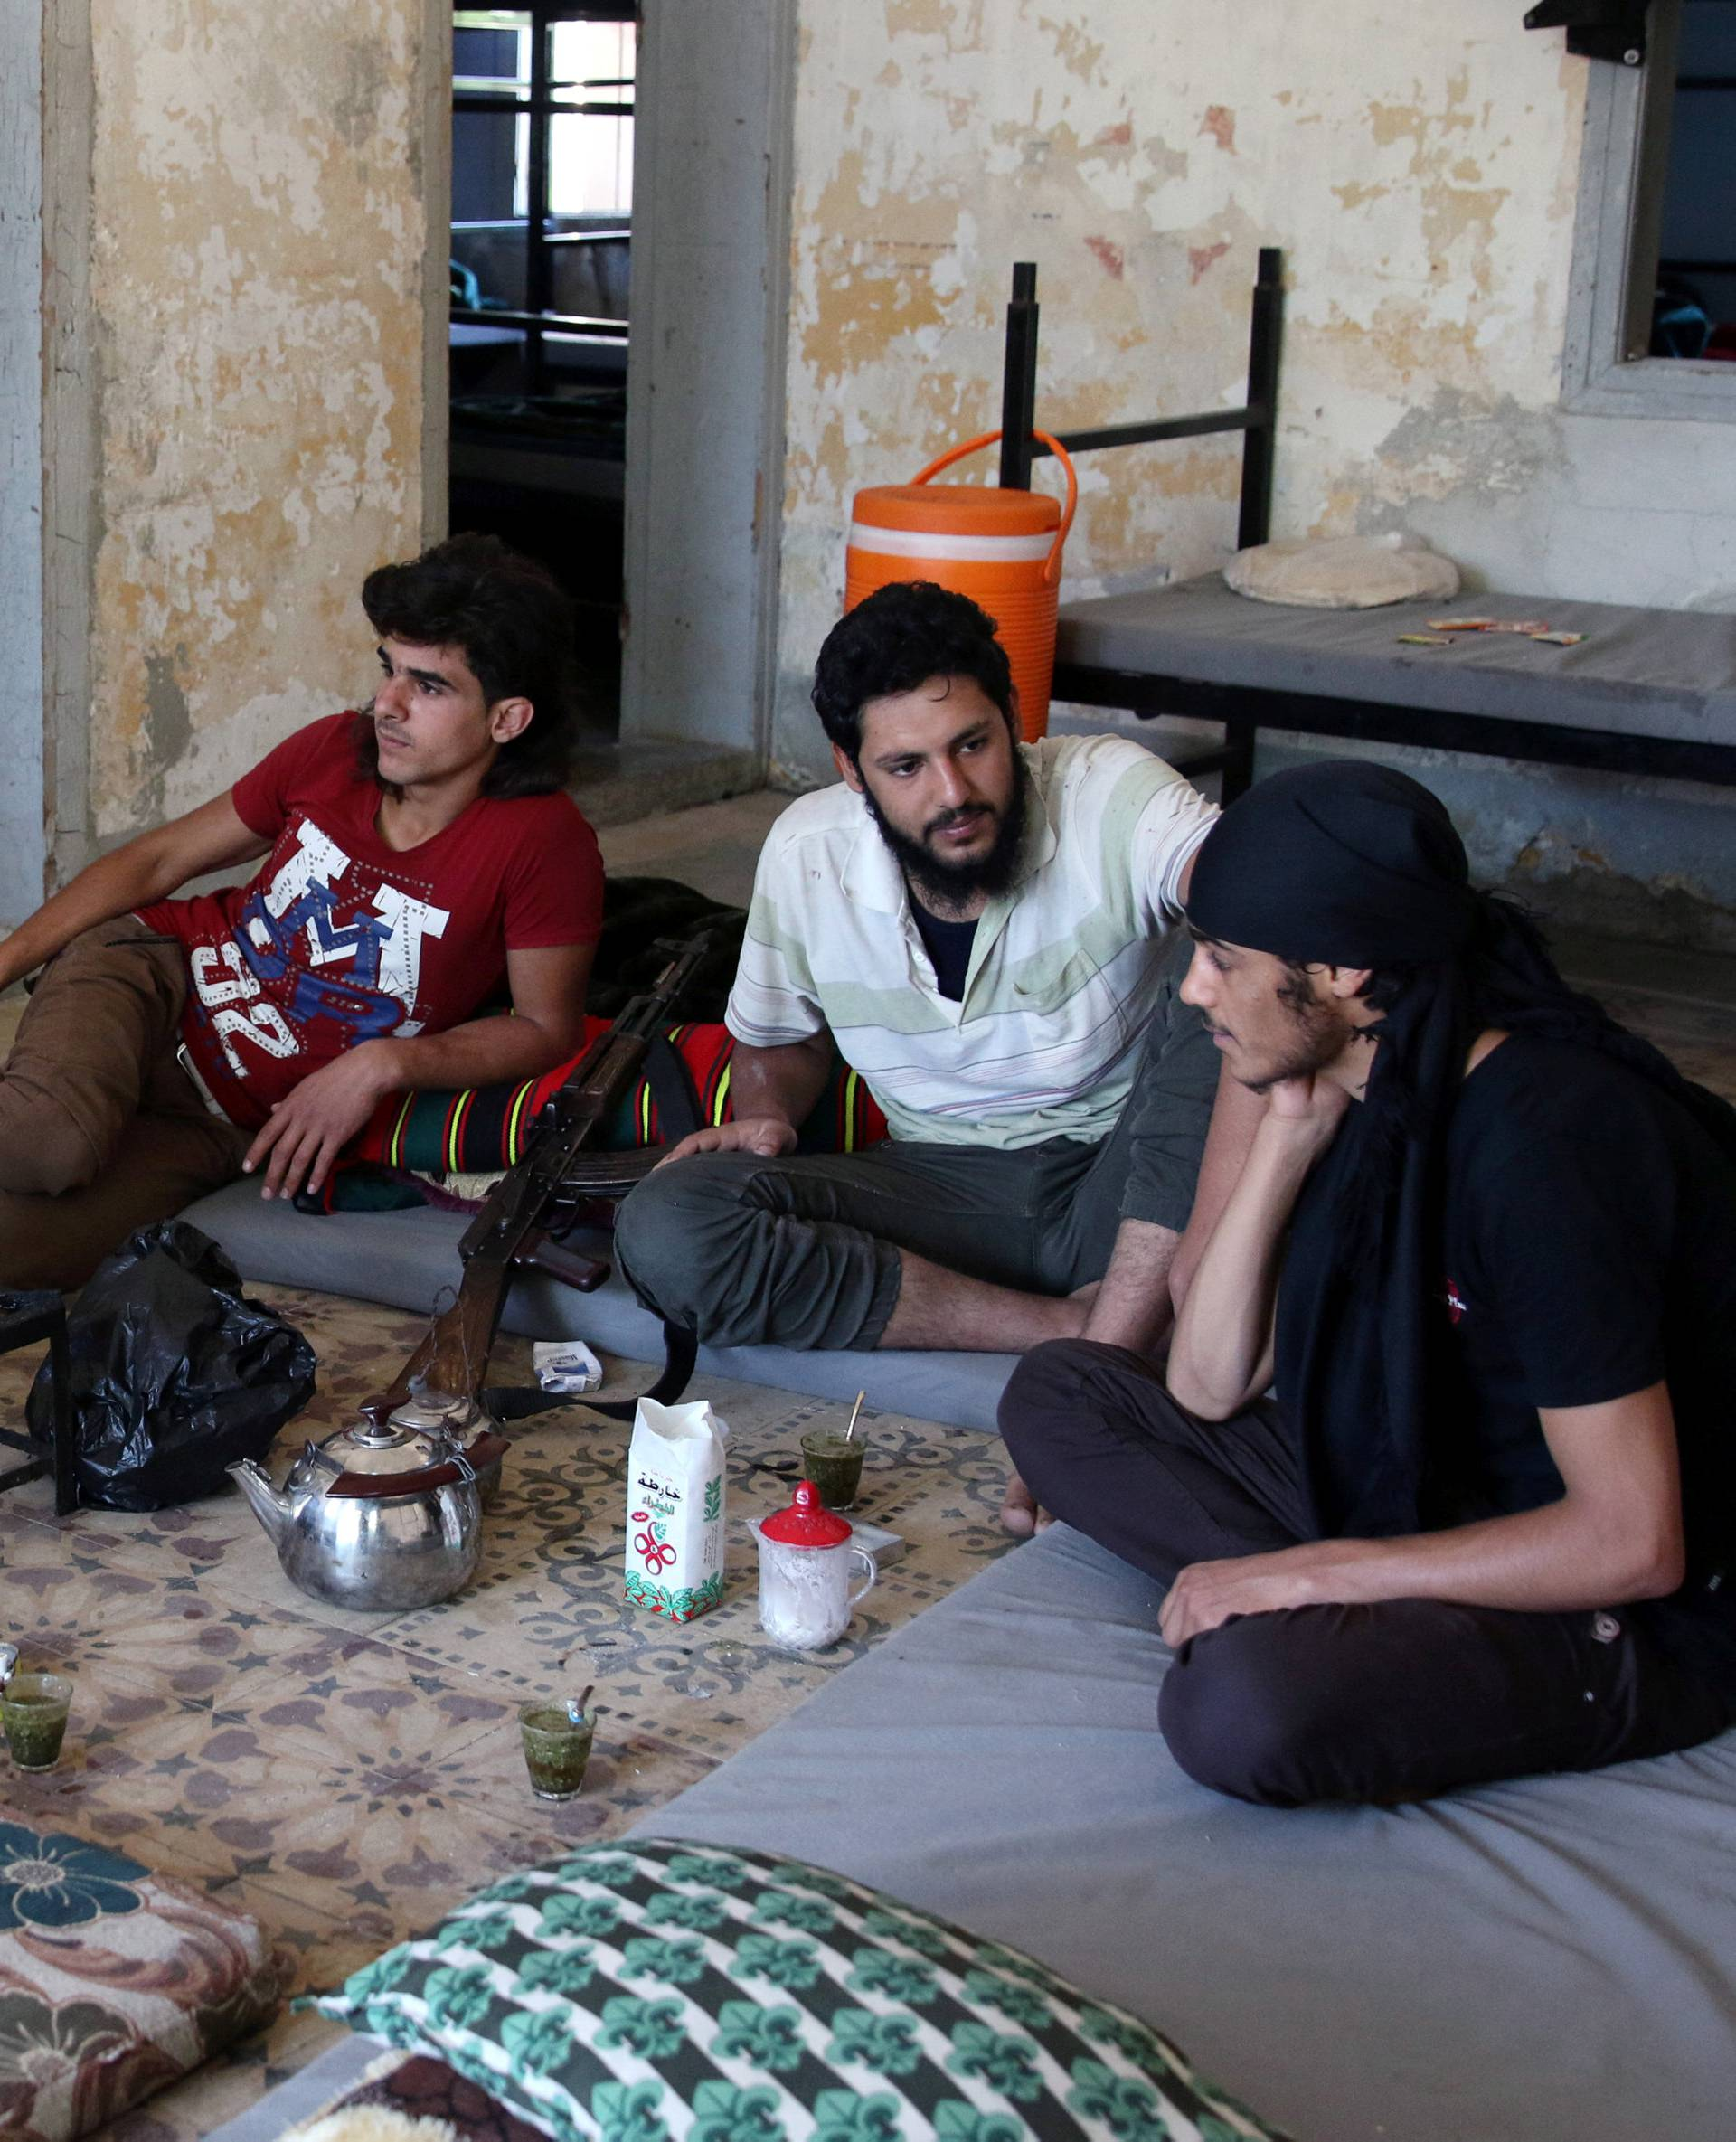 Free Syrian Army fighters rest inside a room in Quneitra